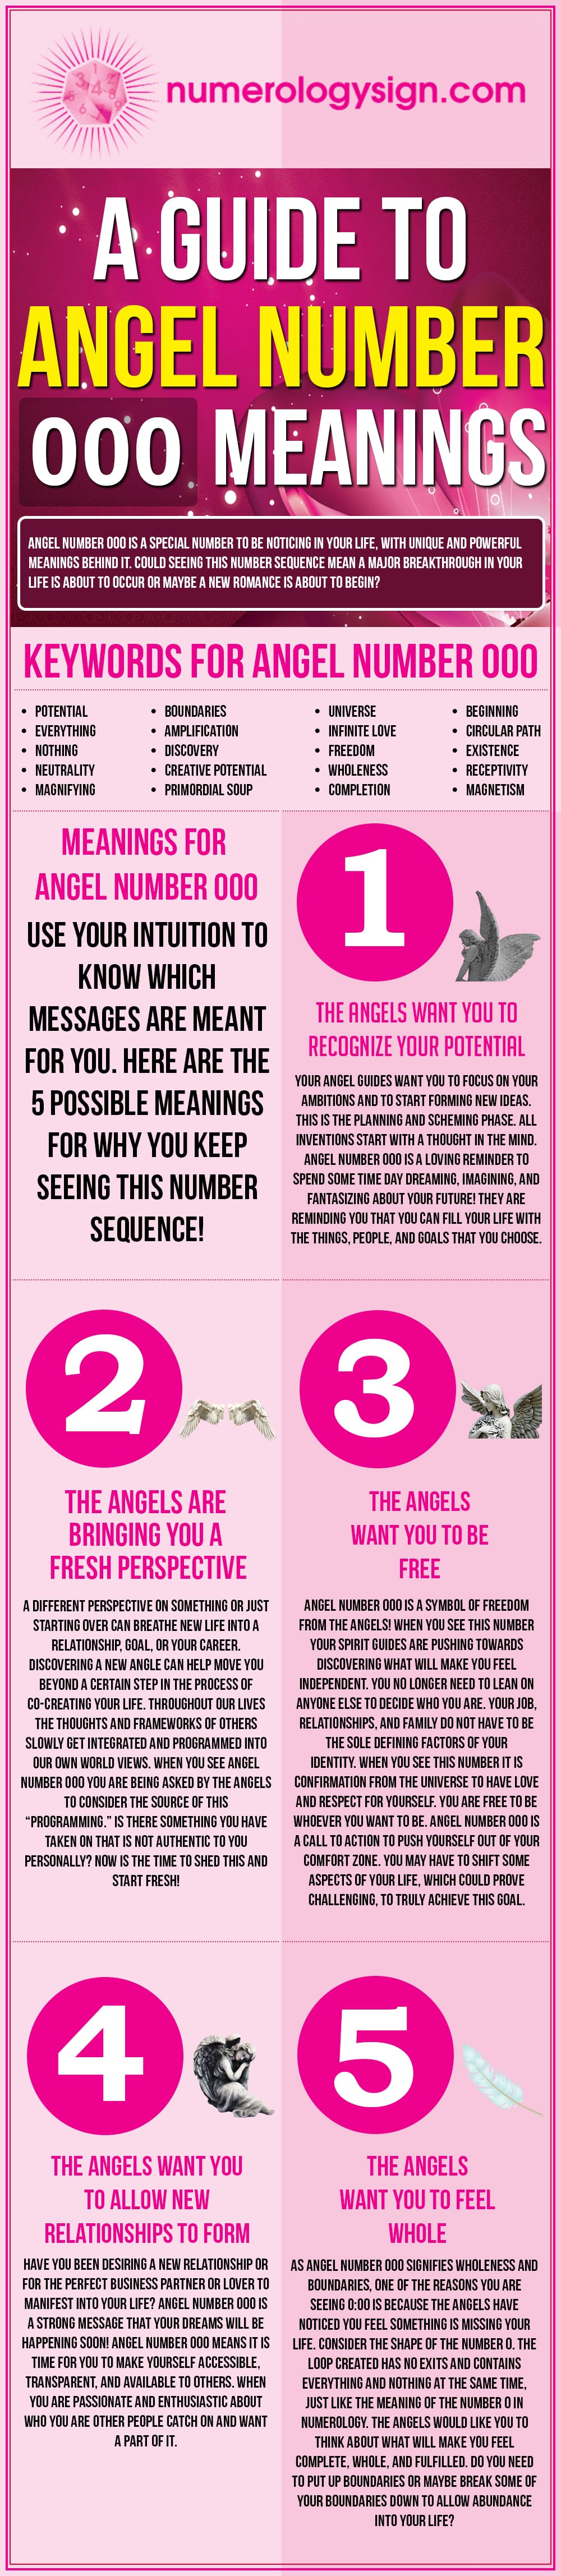 Angel Number 000 Meanings Infographic